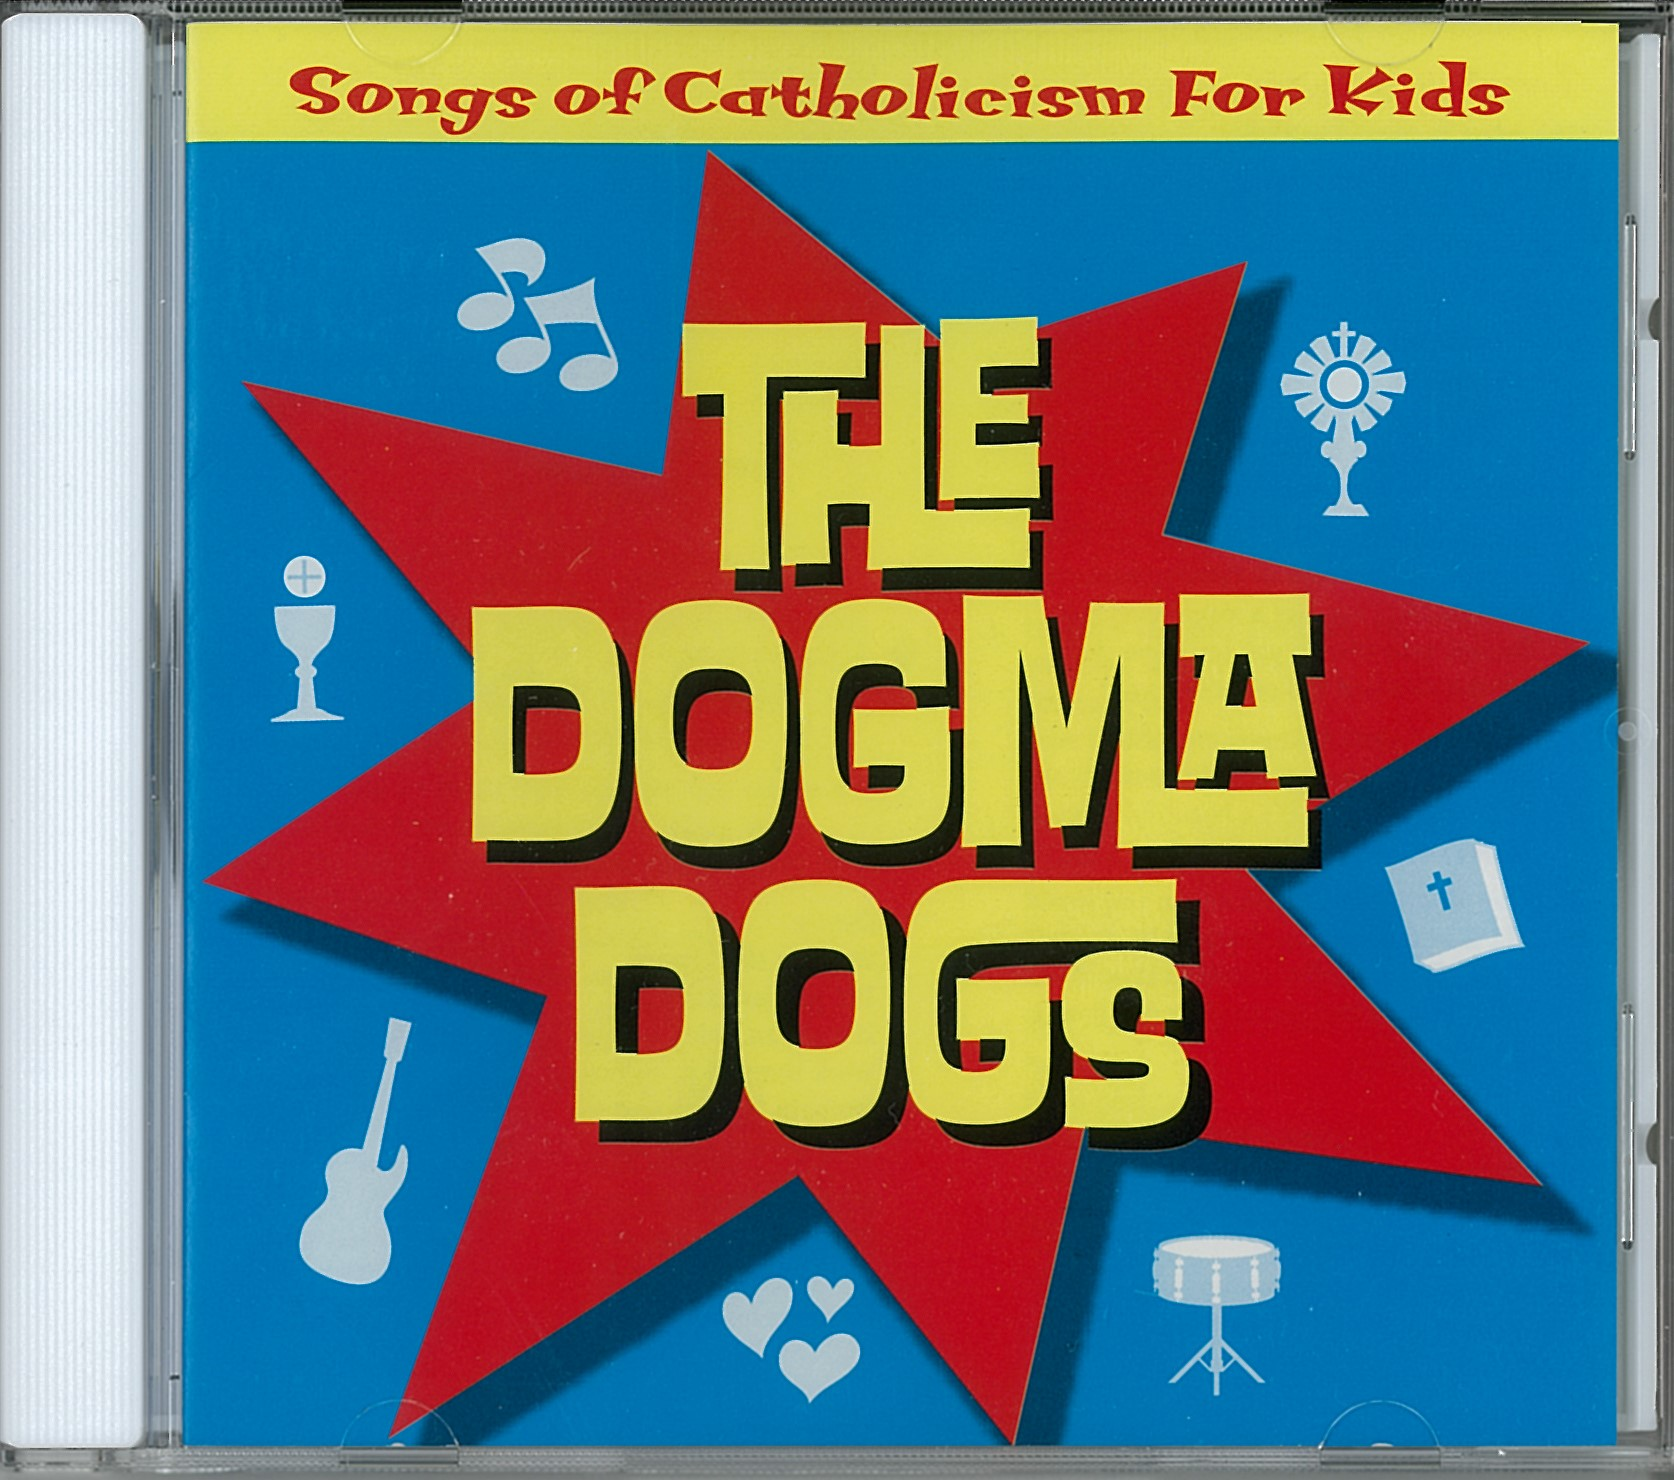 Dogma Dogs: Songs of Catholicism for Kids